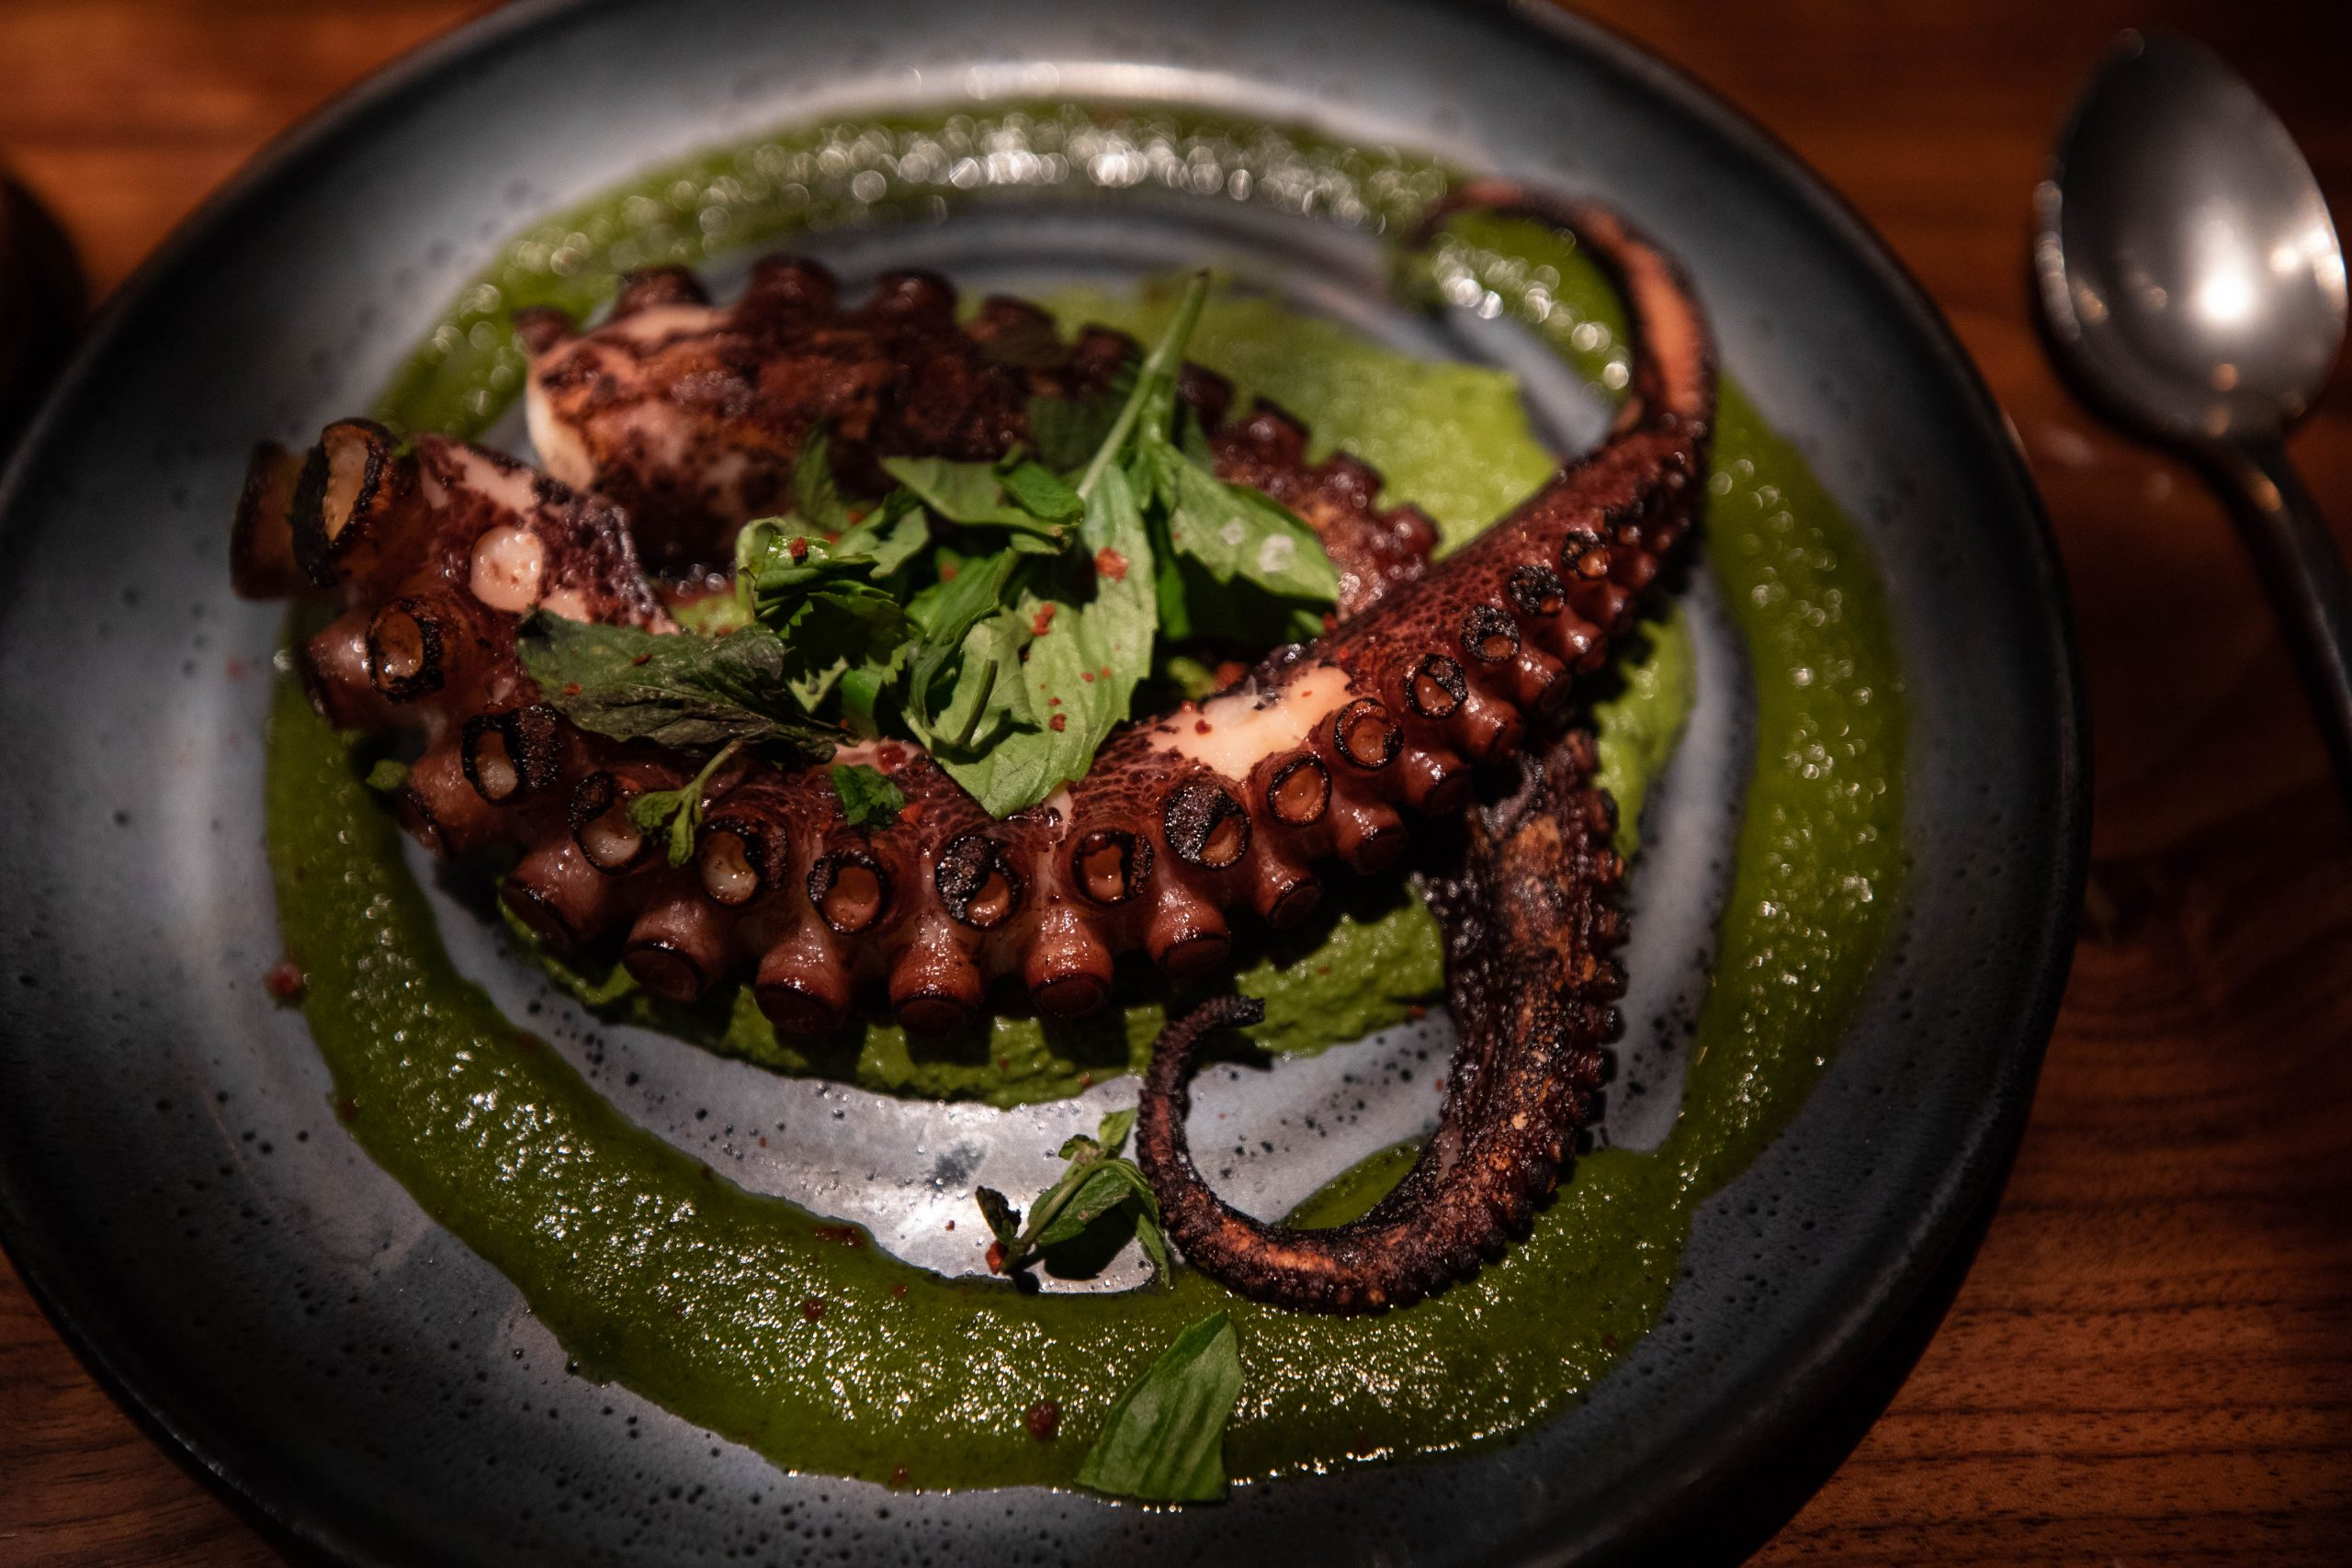 Spanish Octopus Green Hummus and Chimichirri Sauce at Aerlume Seattle Washington Puget Sound Pacific Northwest Farm to Table Fine Dining by Annie Fairfax